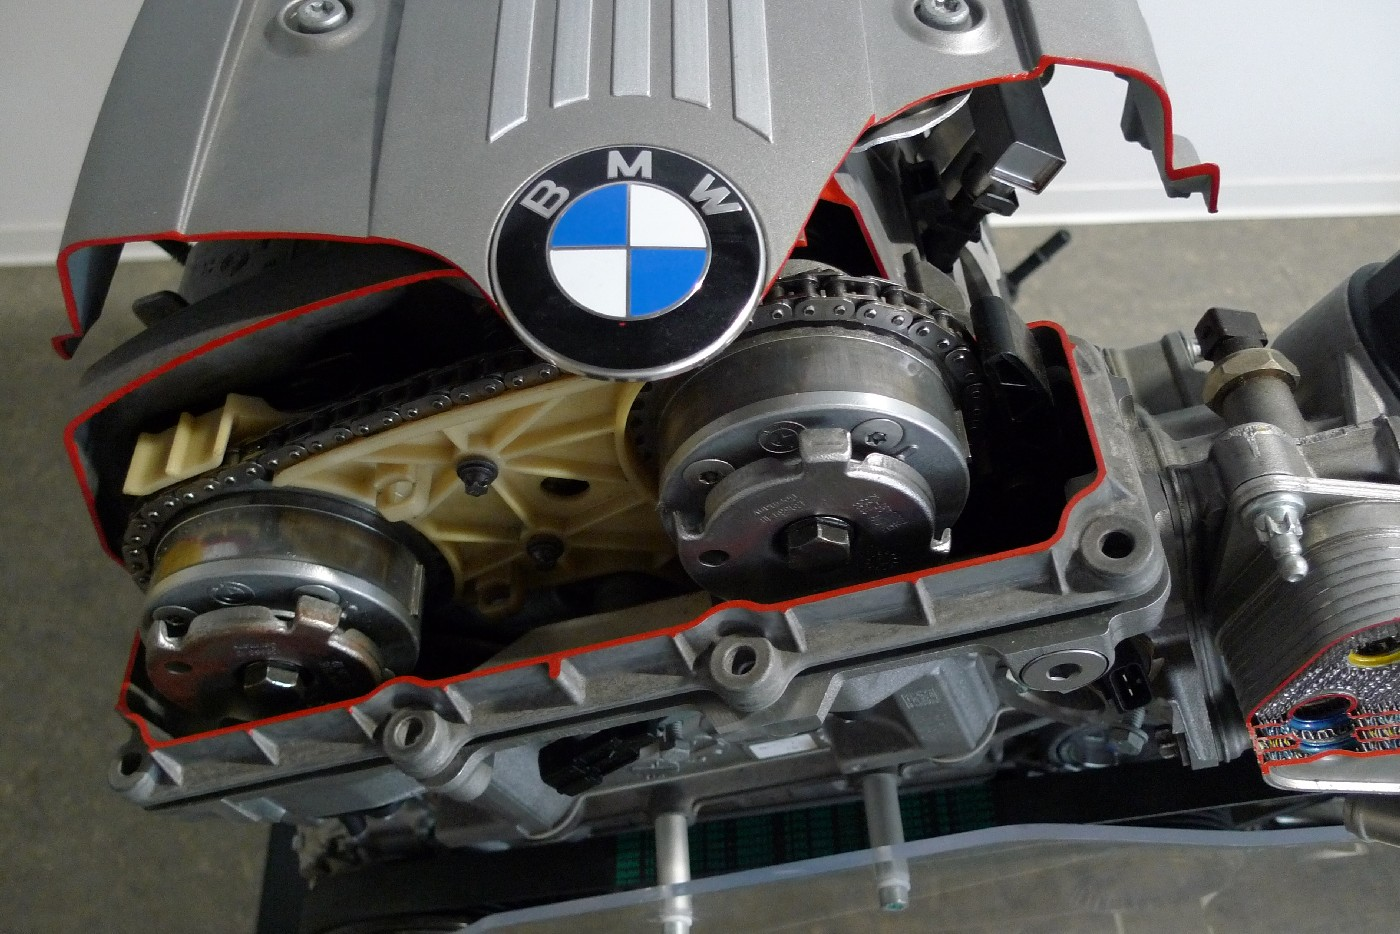 Bmw N53 Wikipedia N52 Crankshaft Sensor Wiring Diagram Double Vanos As Seen On An Engine